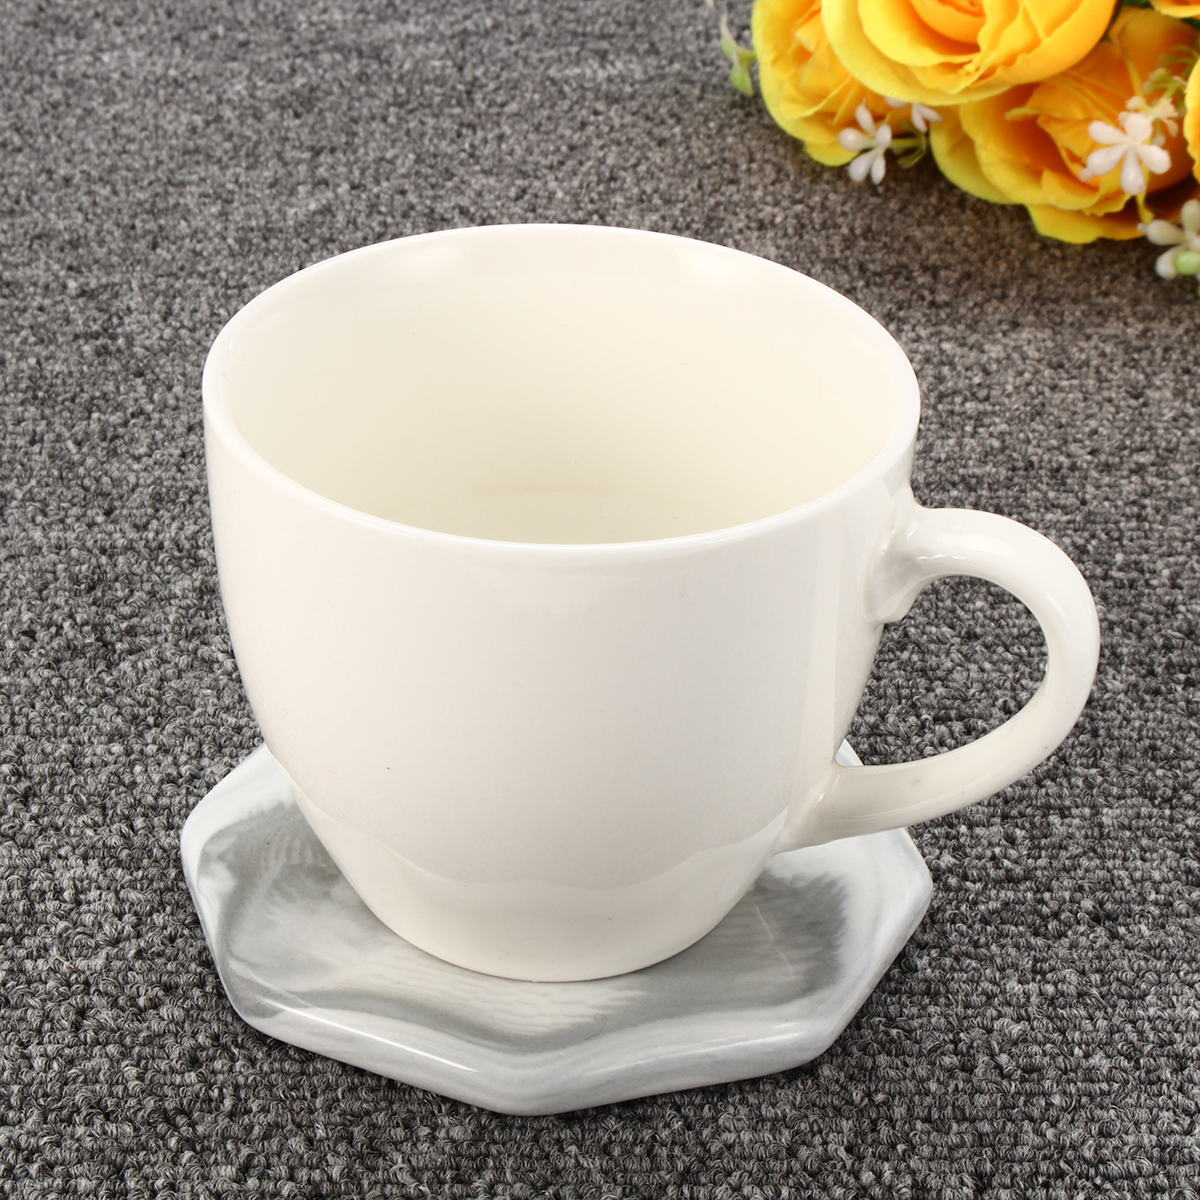 3 Pattern Set Marble Anti-Slip Ceramic Coaster Coffee Cup Mat Table Pads Decor